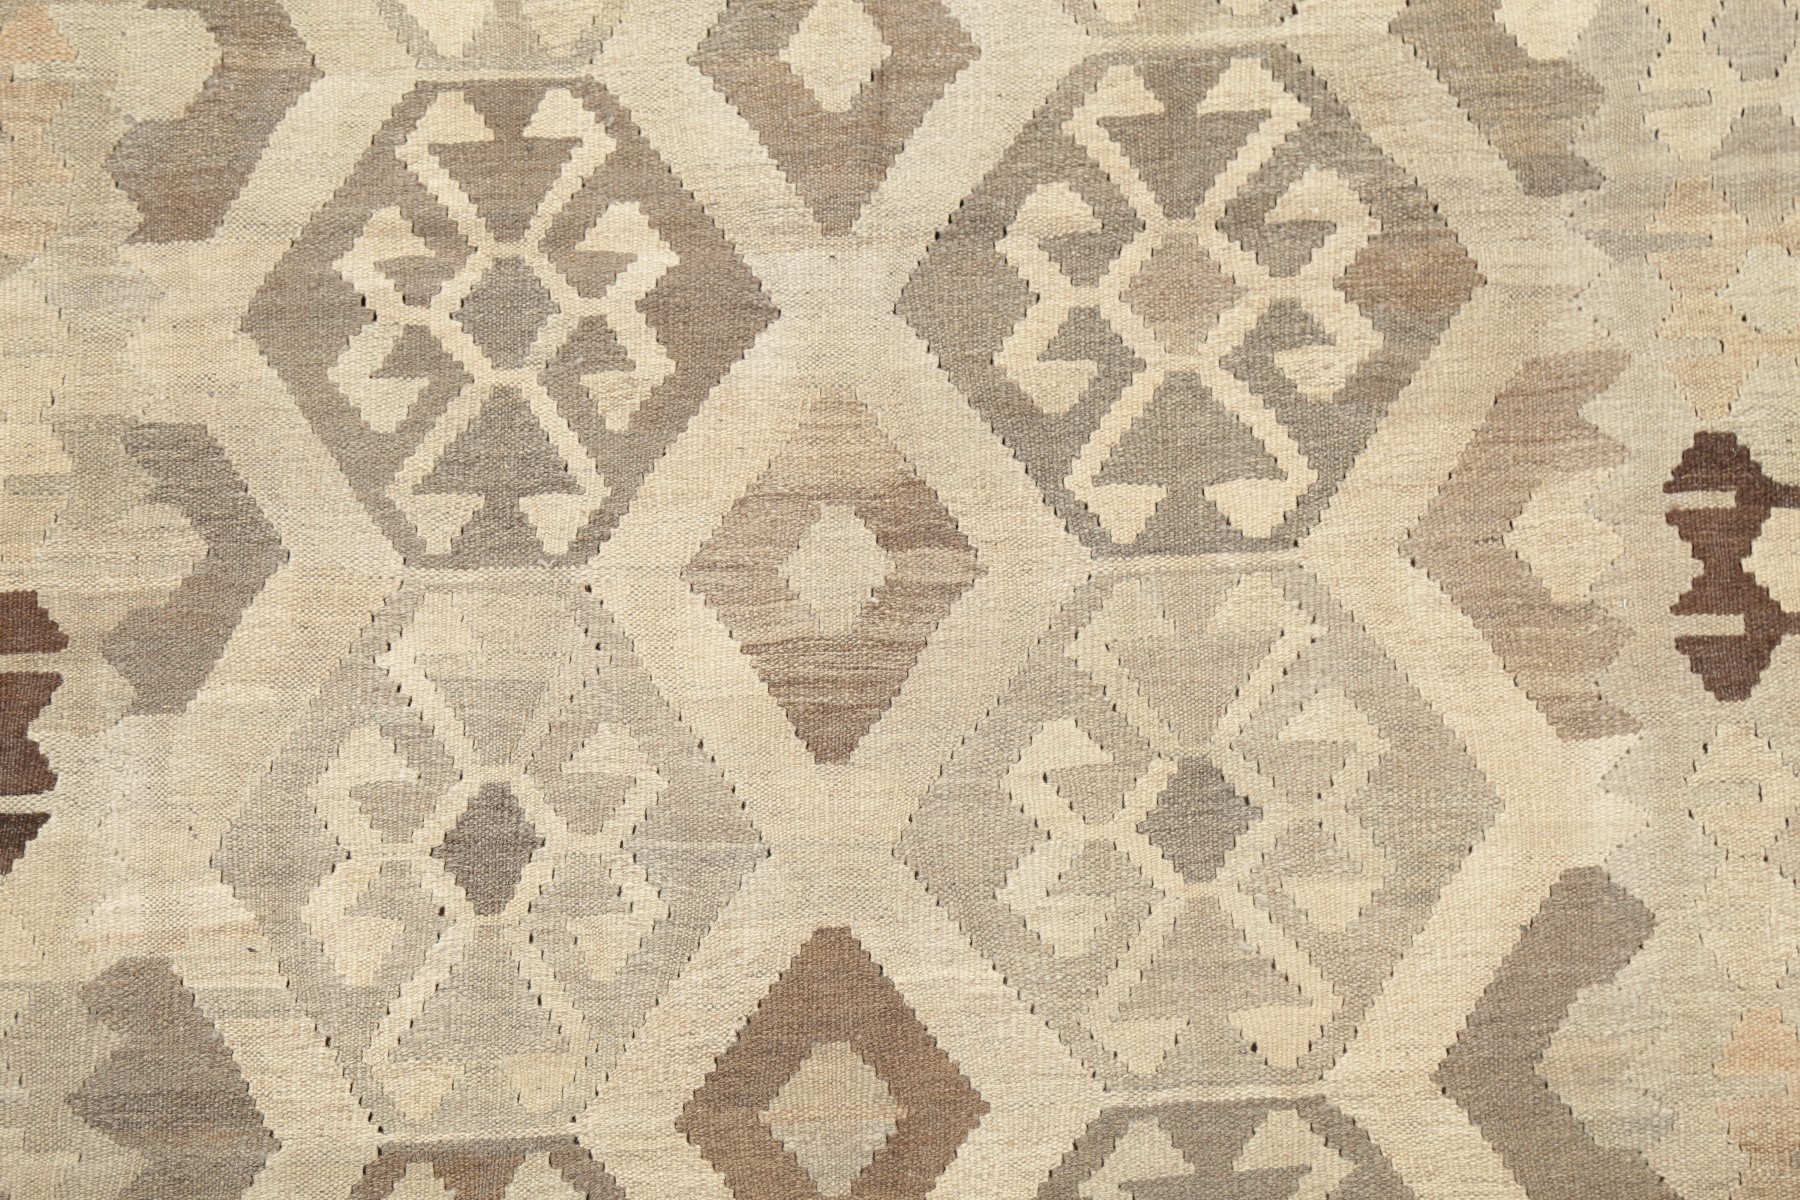 Details About Geometric Vintage Style Natural Earth Tone Kilim Turkish Area Rug Flat Pile 5x7